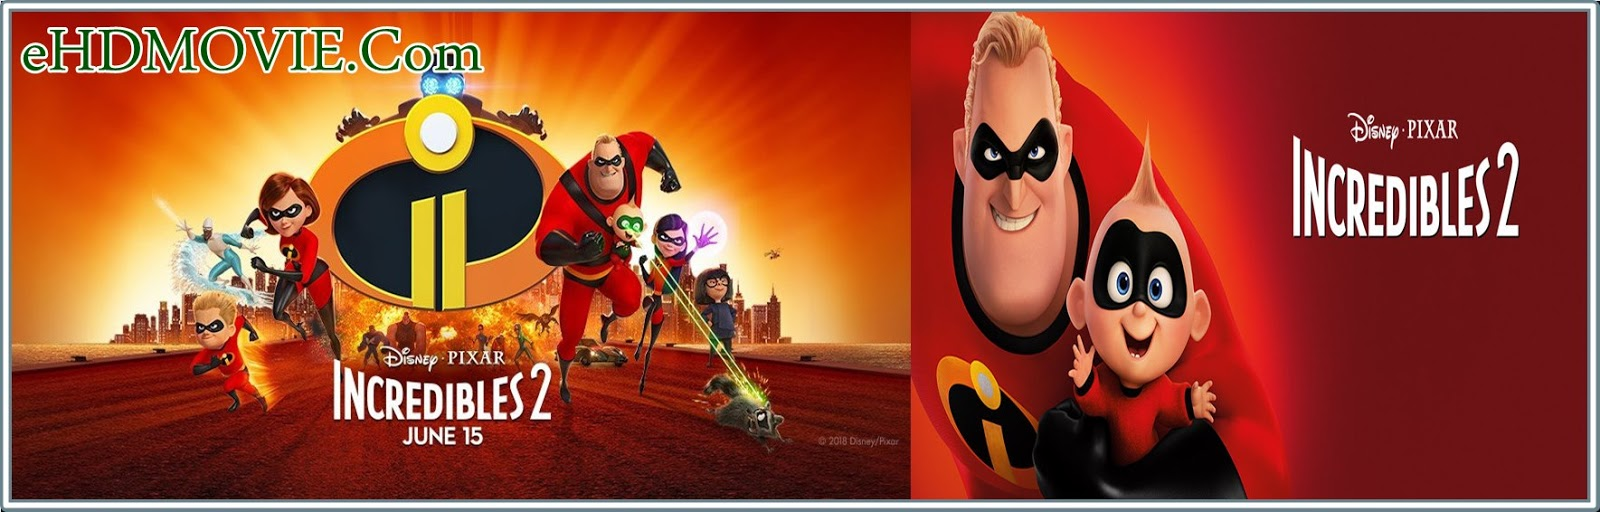 Incredibles 2 2018 Full Movie Dual Audio [Hindi – English] 720p - HEVC - 480p ORG WEB-DL 350MB - 600MB - 1GB ESubs Free Download